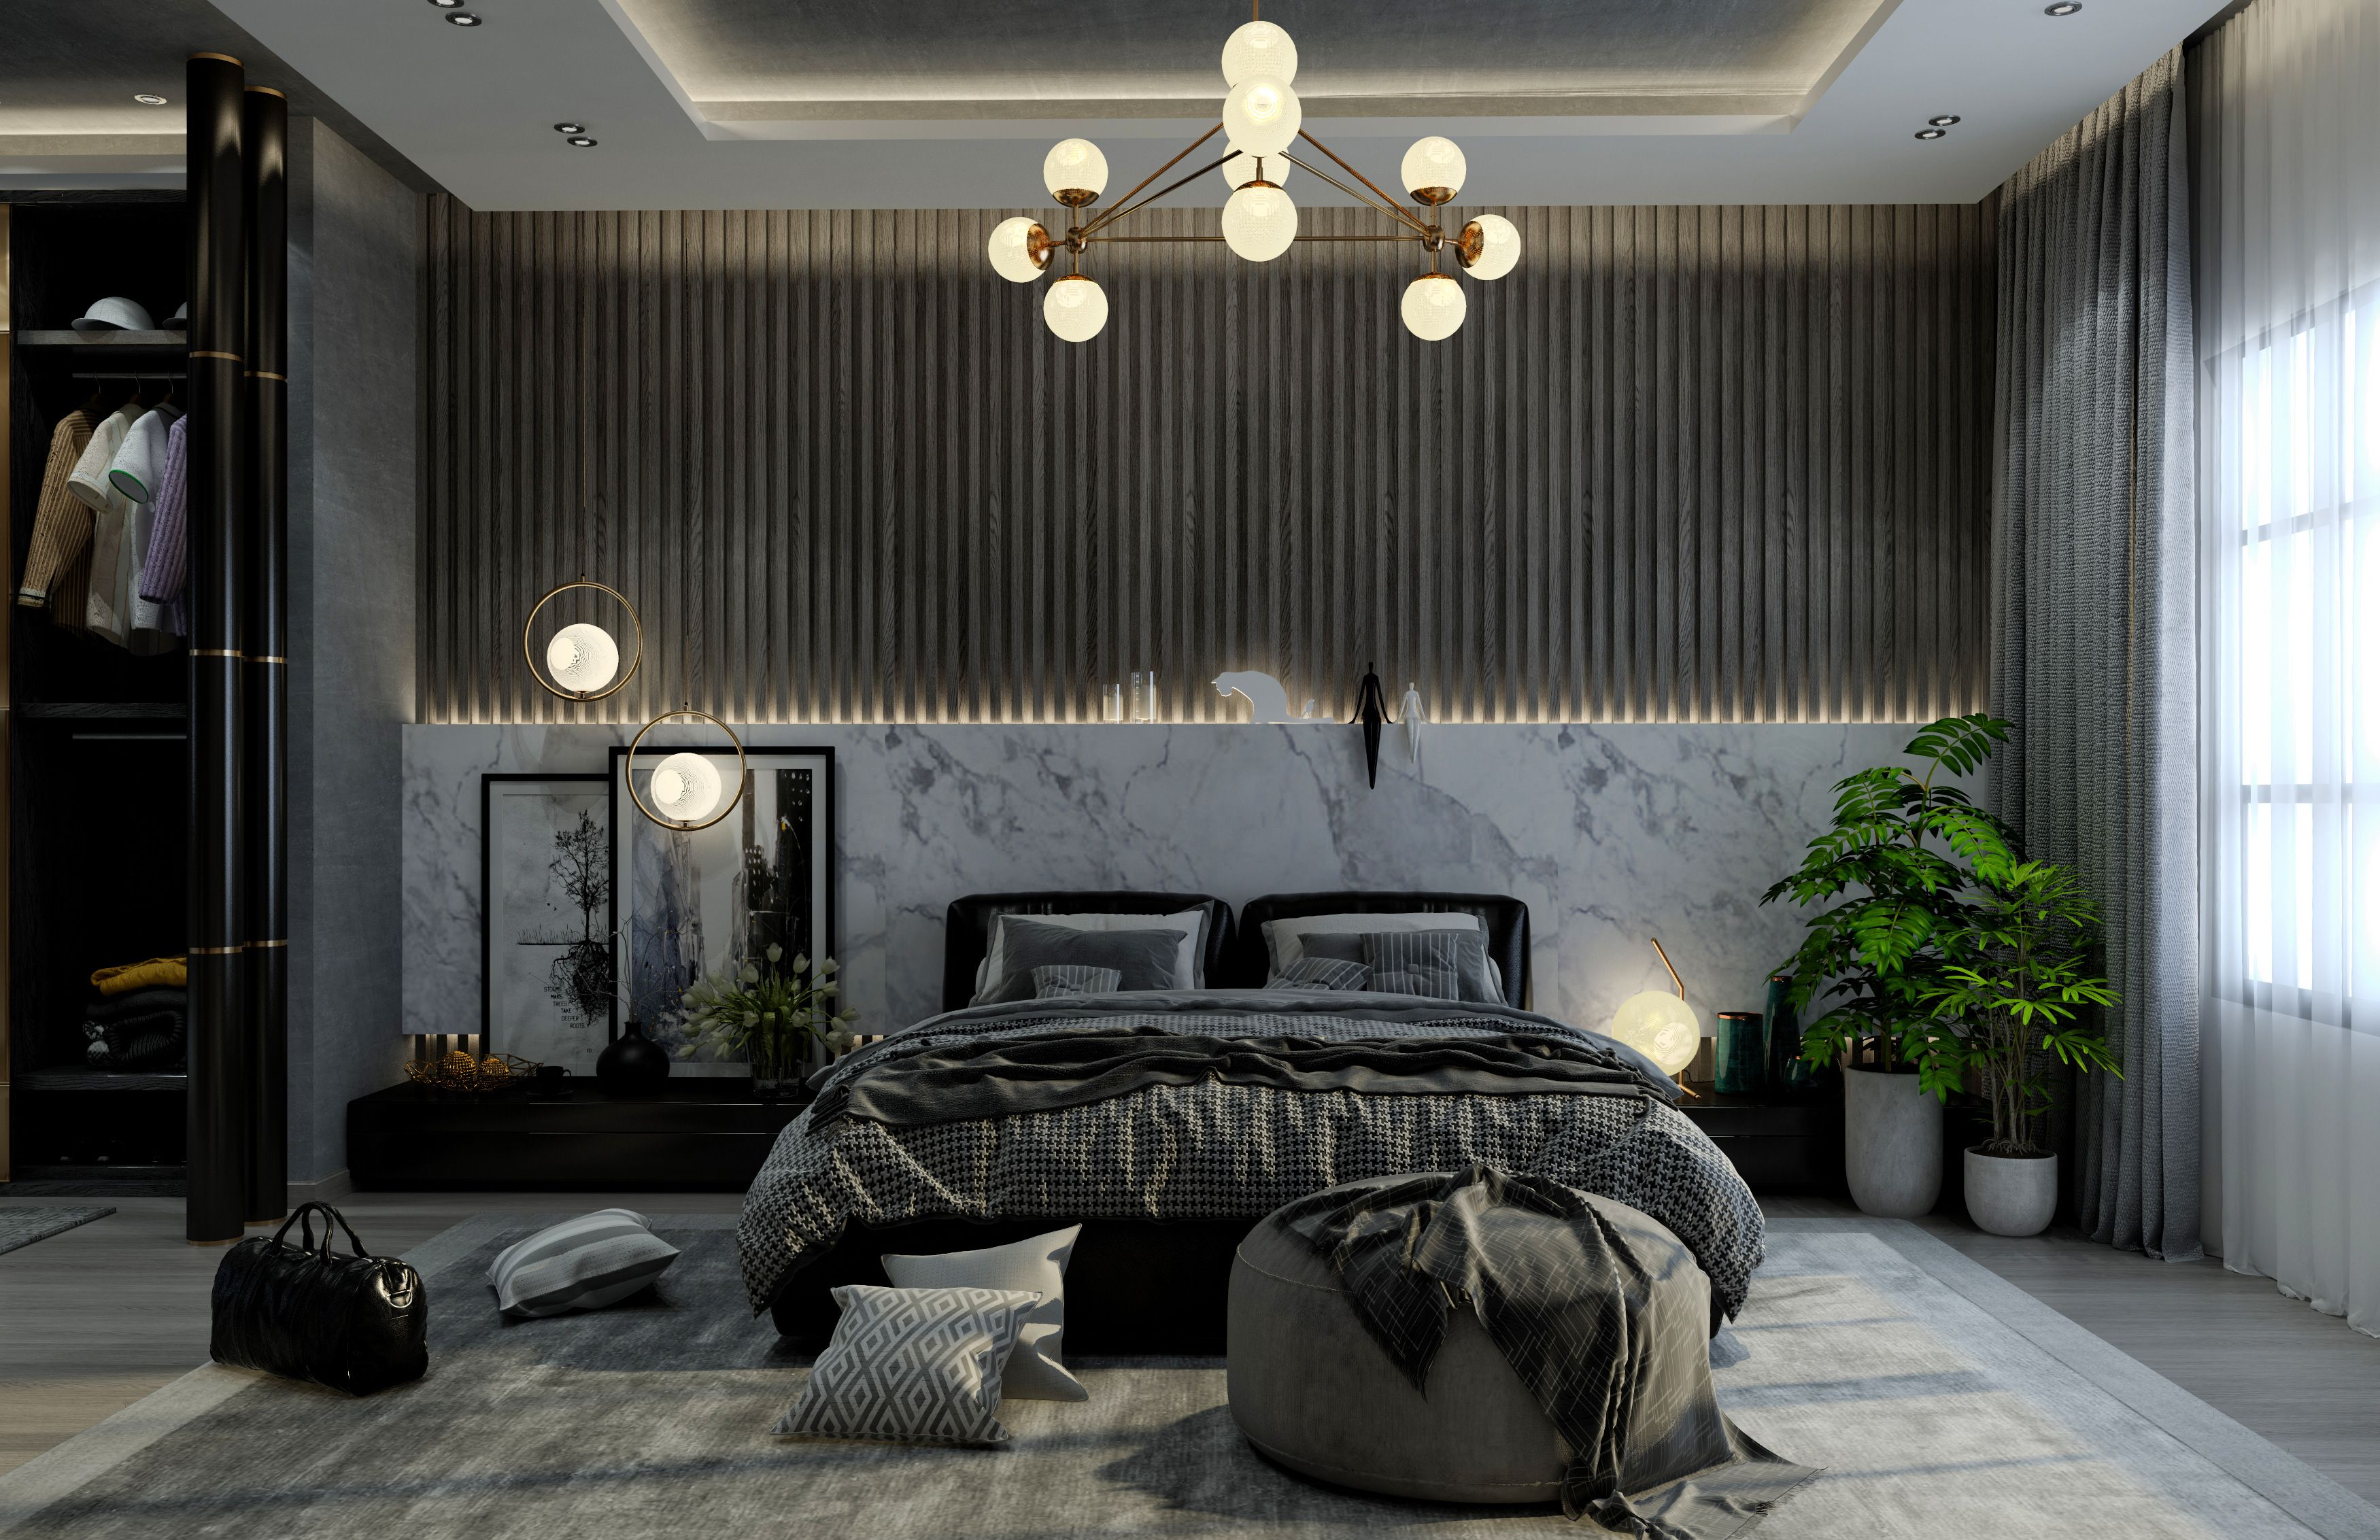 Check Out This Behance Project Allegria Master Bedroom Https Www Behance Net G Luxury Bedroom Master Master Bedroom Interior Luxury Master Bedroom Design